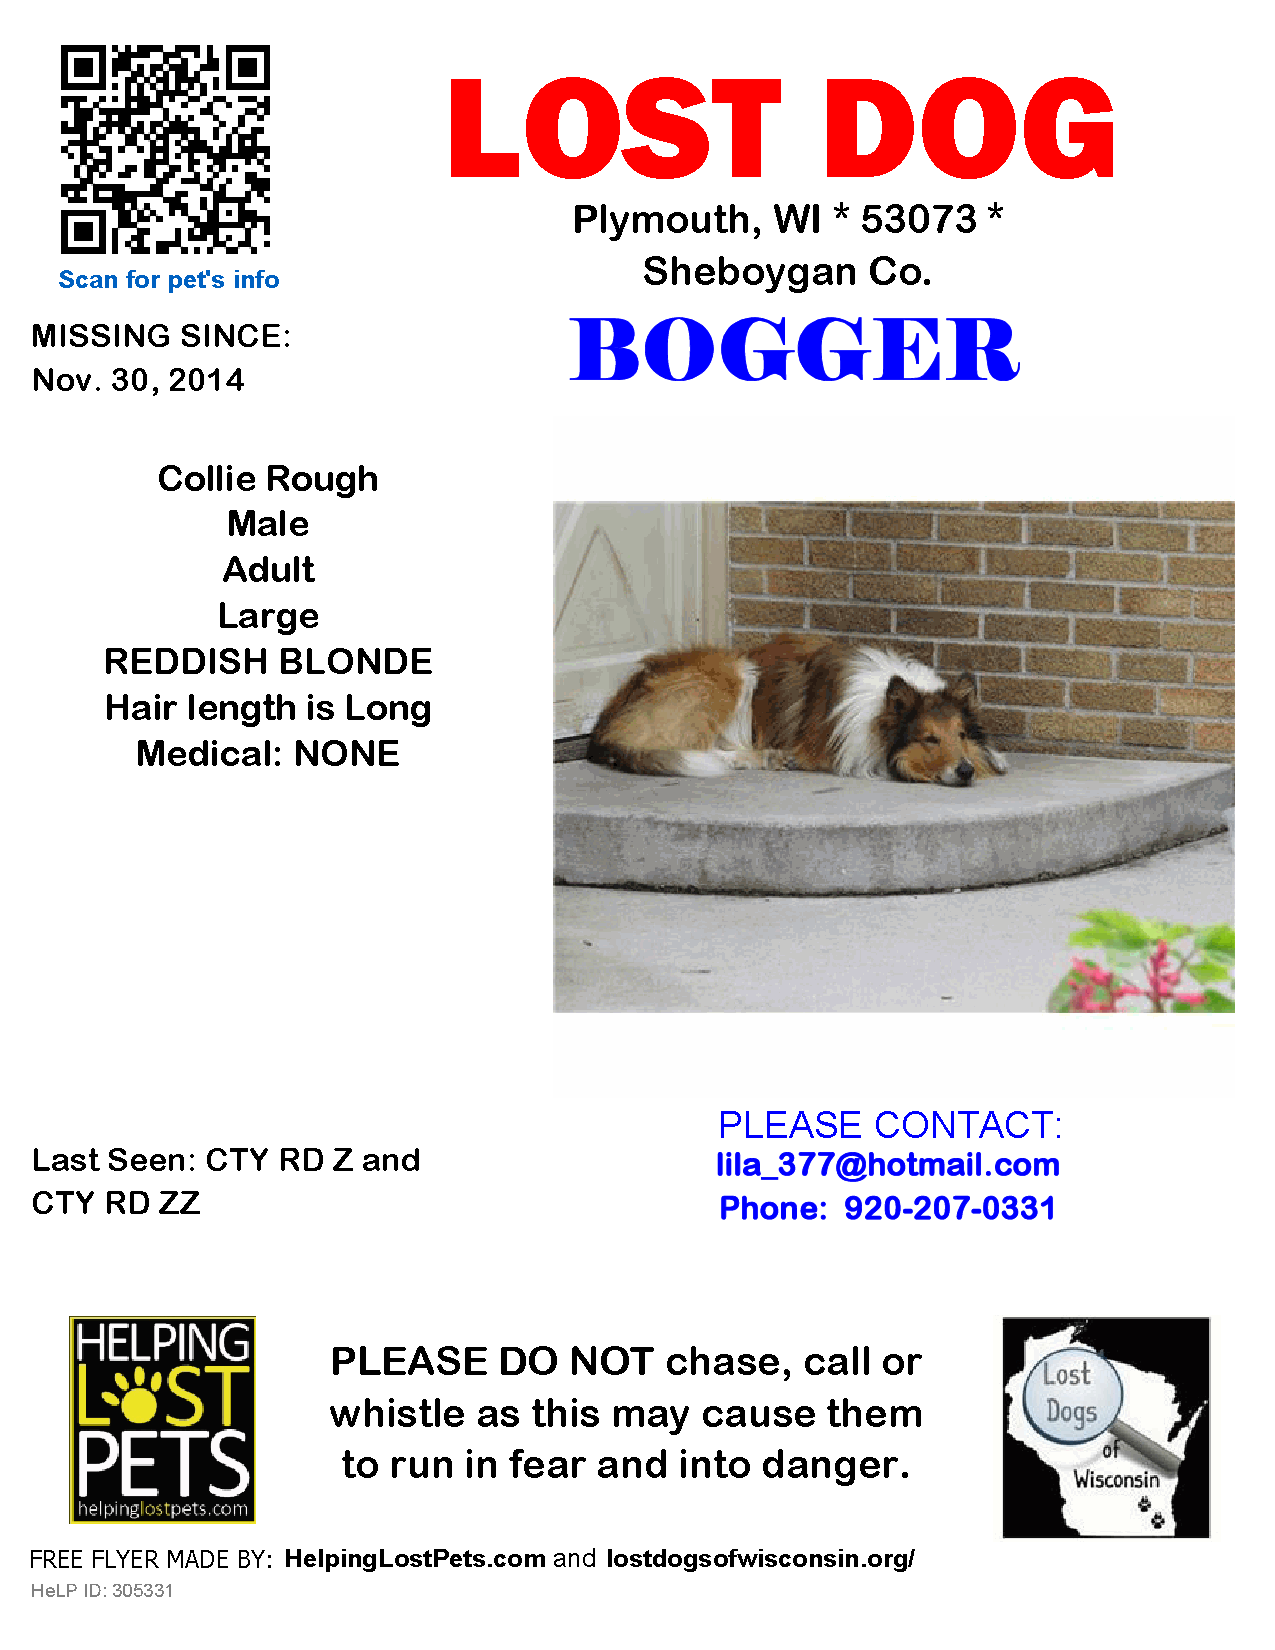 Lost Dogs Of Wisconsin December 1 2014 Lost Dog Bogger 11 30 2014 Sheboygan Co Plymouth Cty Rd Z Cty Rd Zz Wi 53073 Bogg Losing A Dog